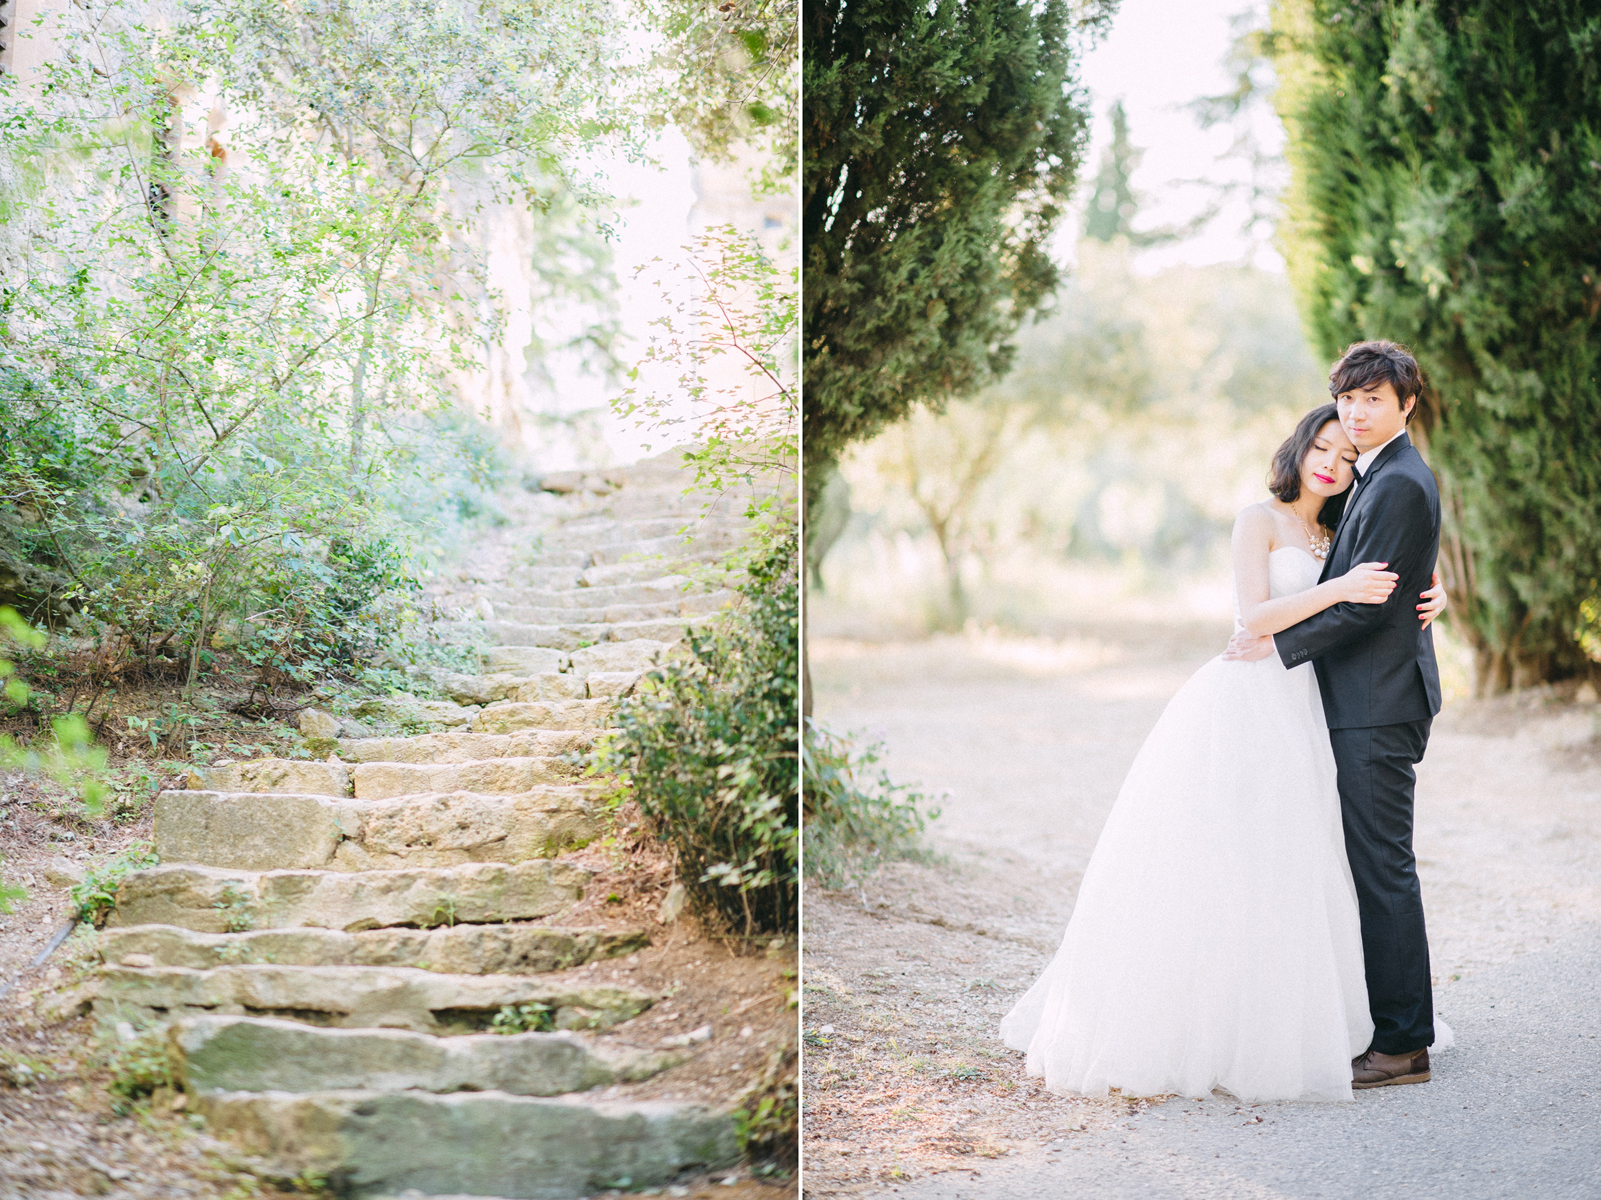 Boheme-Moon-Wedding-Photography-Taiwan-Pre-Wedding-Provence_15.jpg